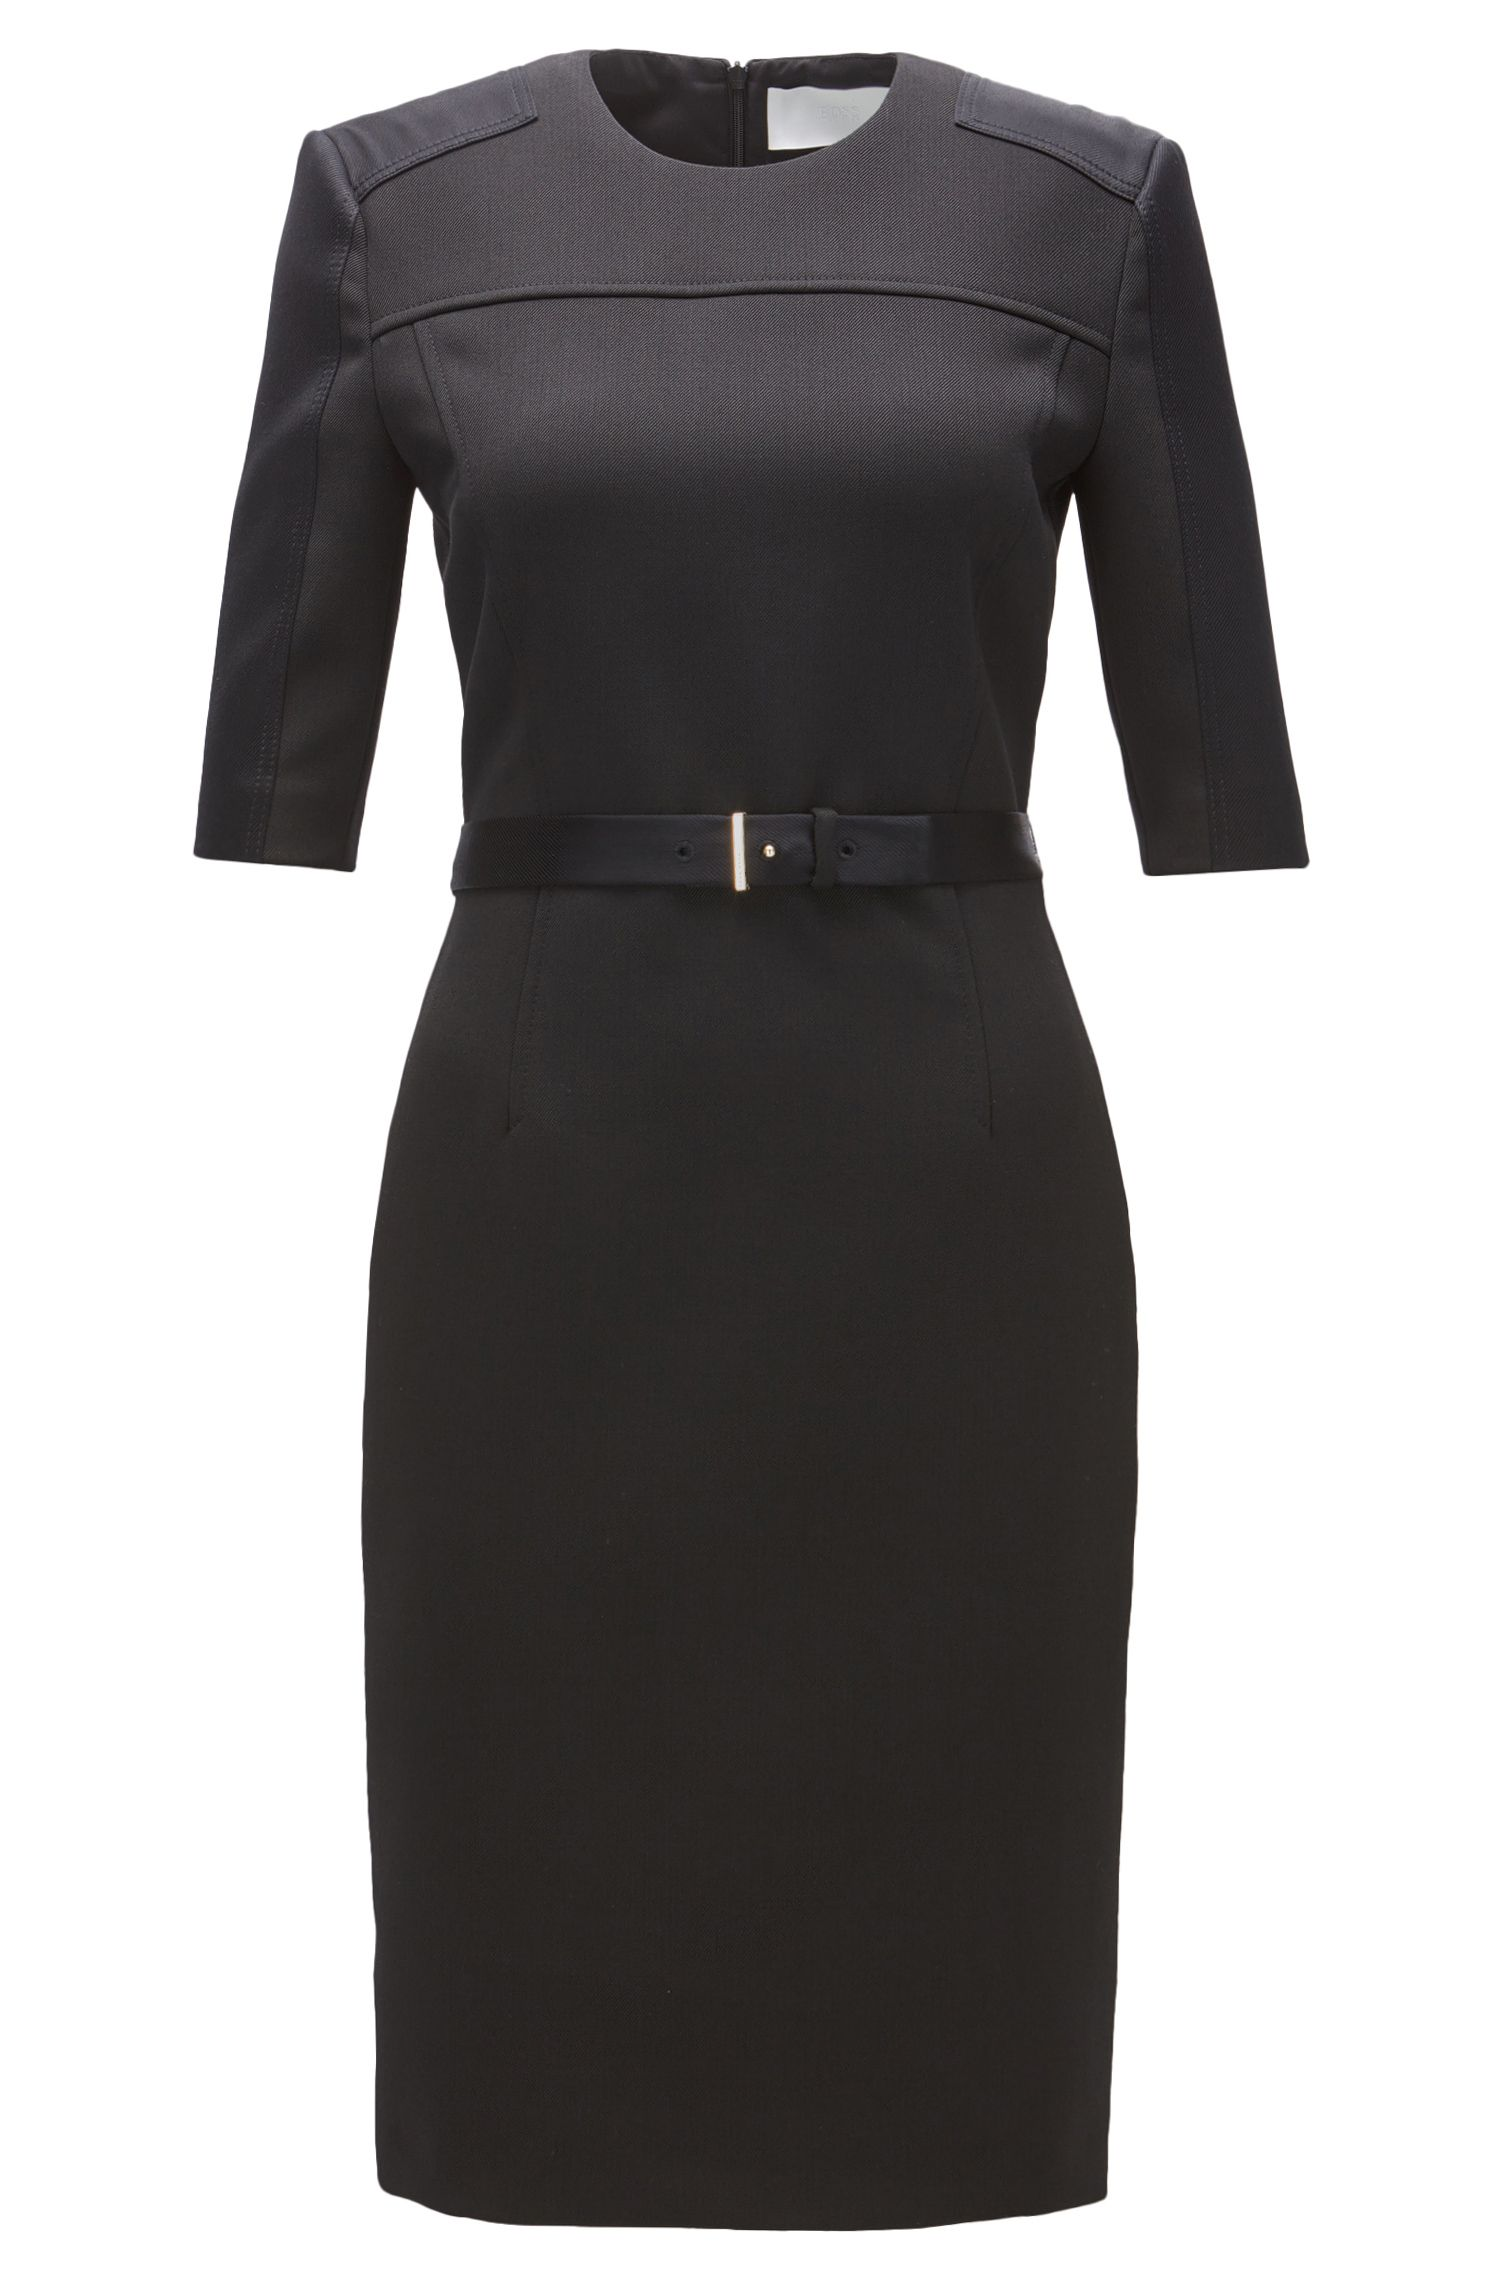 Belted Stretch Sheath Dress | Dakulia